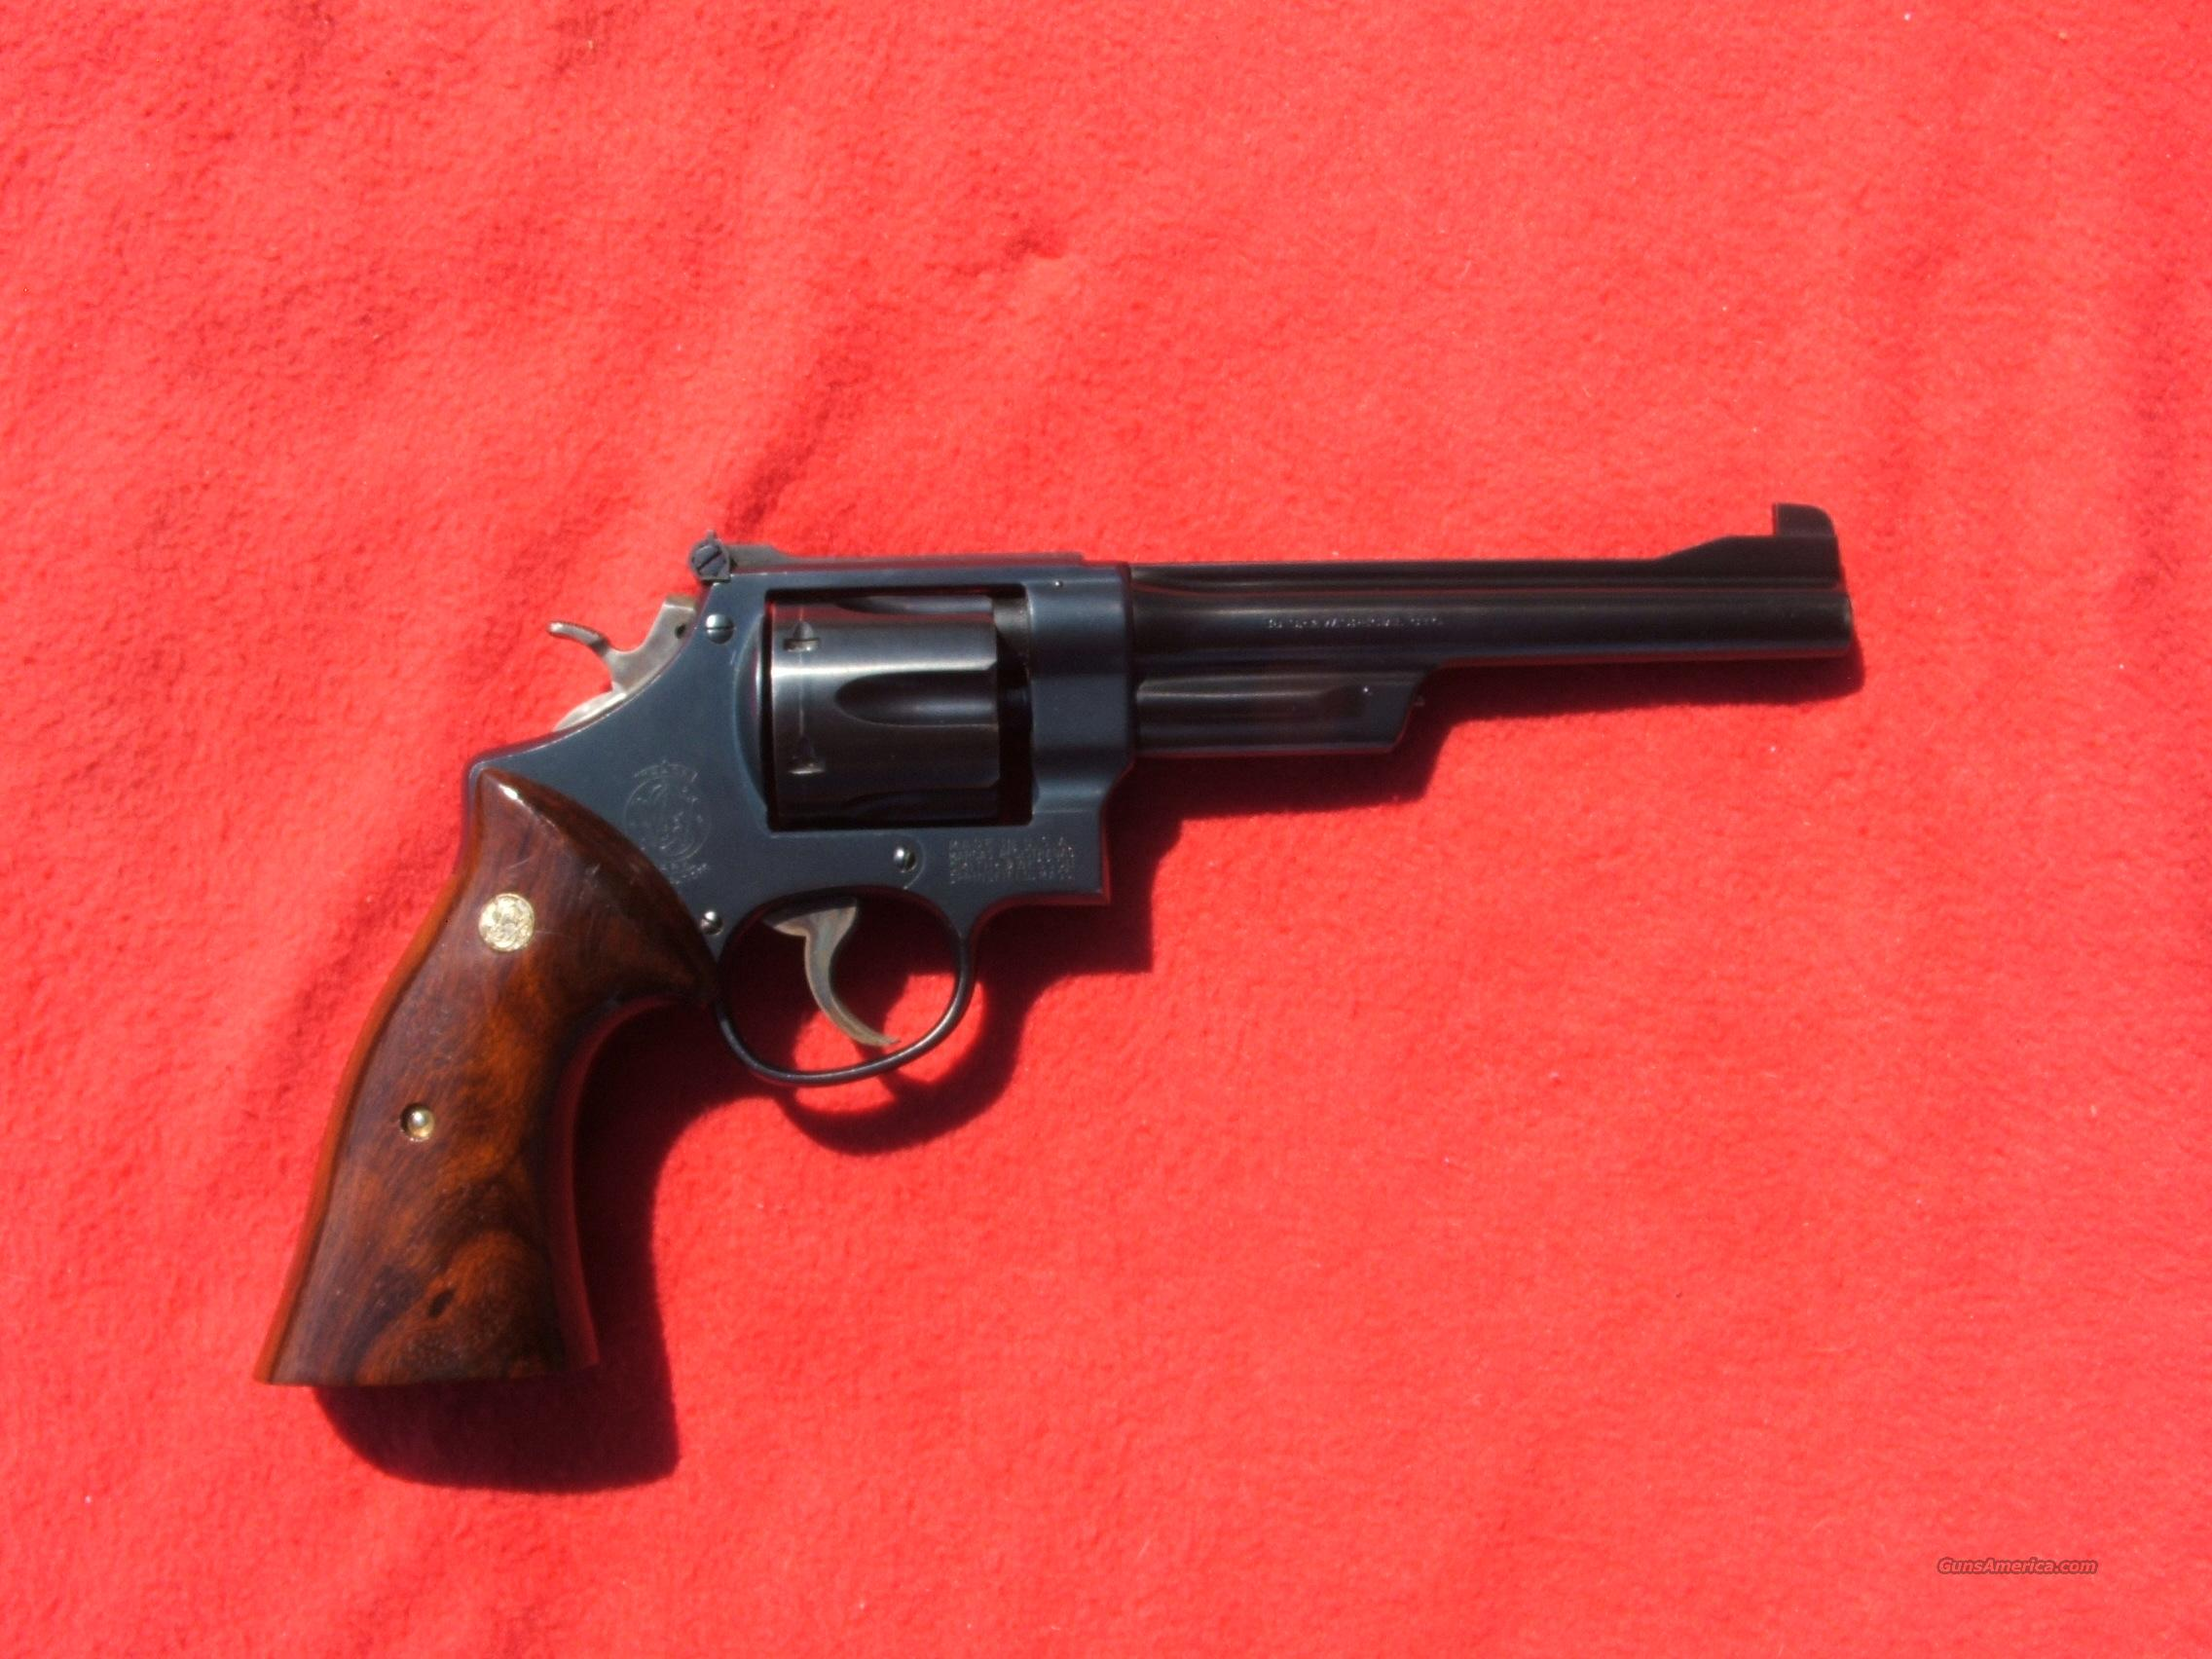 Smith&Wesson 38-44OutdoorsmanModel of 1950  Guns > Pistols > Smith & Wesson Revolvers > Full Frame Revolver